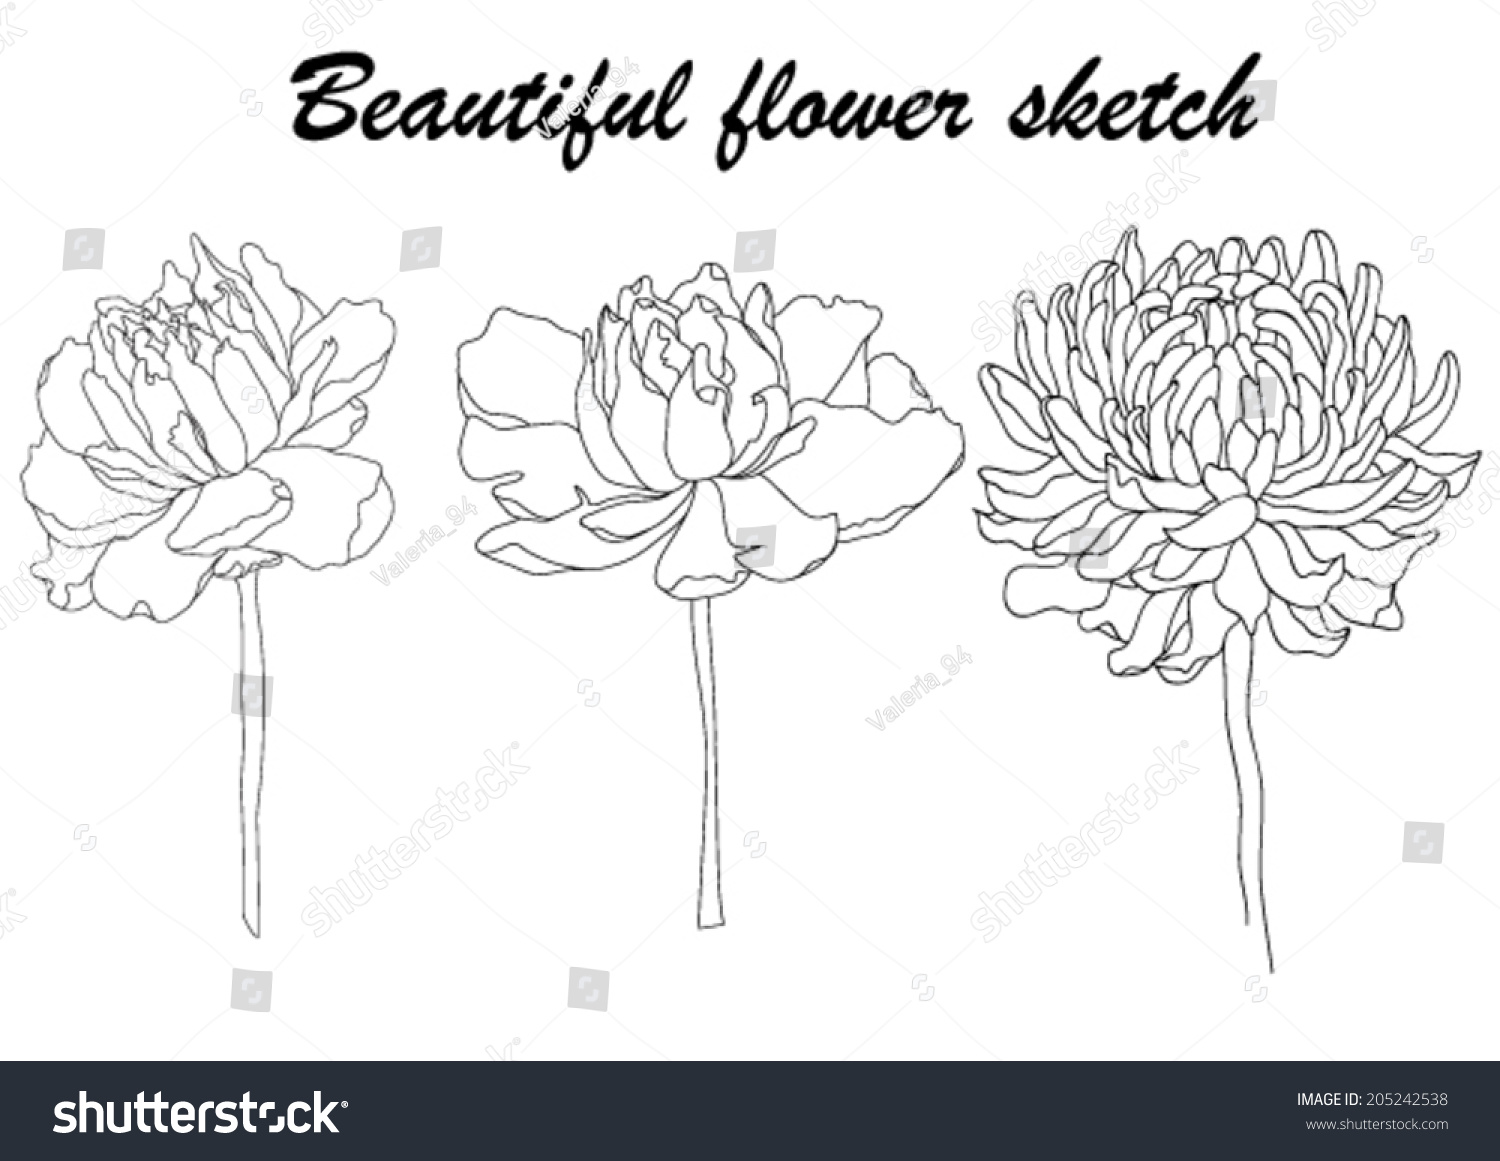 Illustration Sketch Of Chrysanthemum And Peony Flowers In Black And